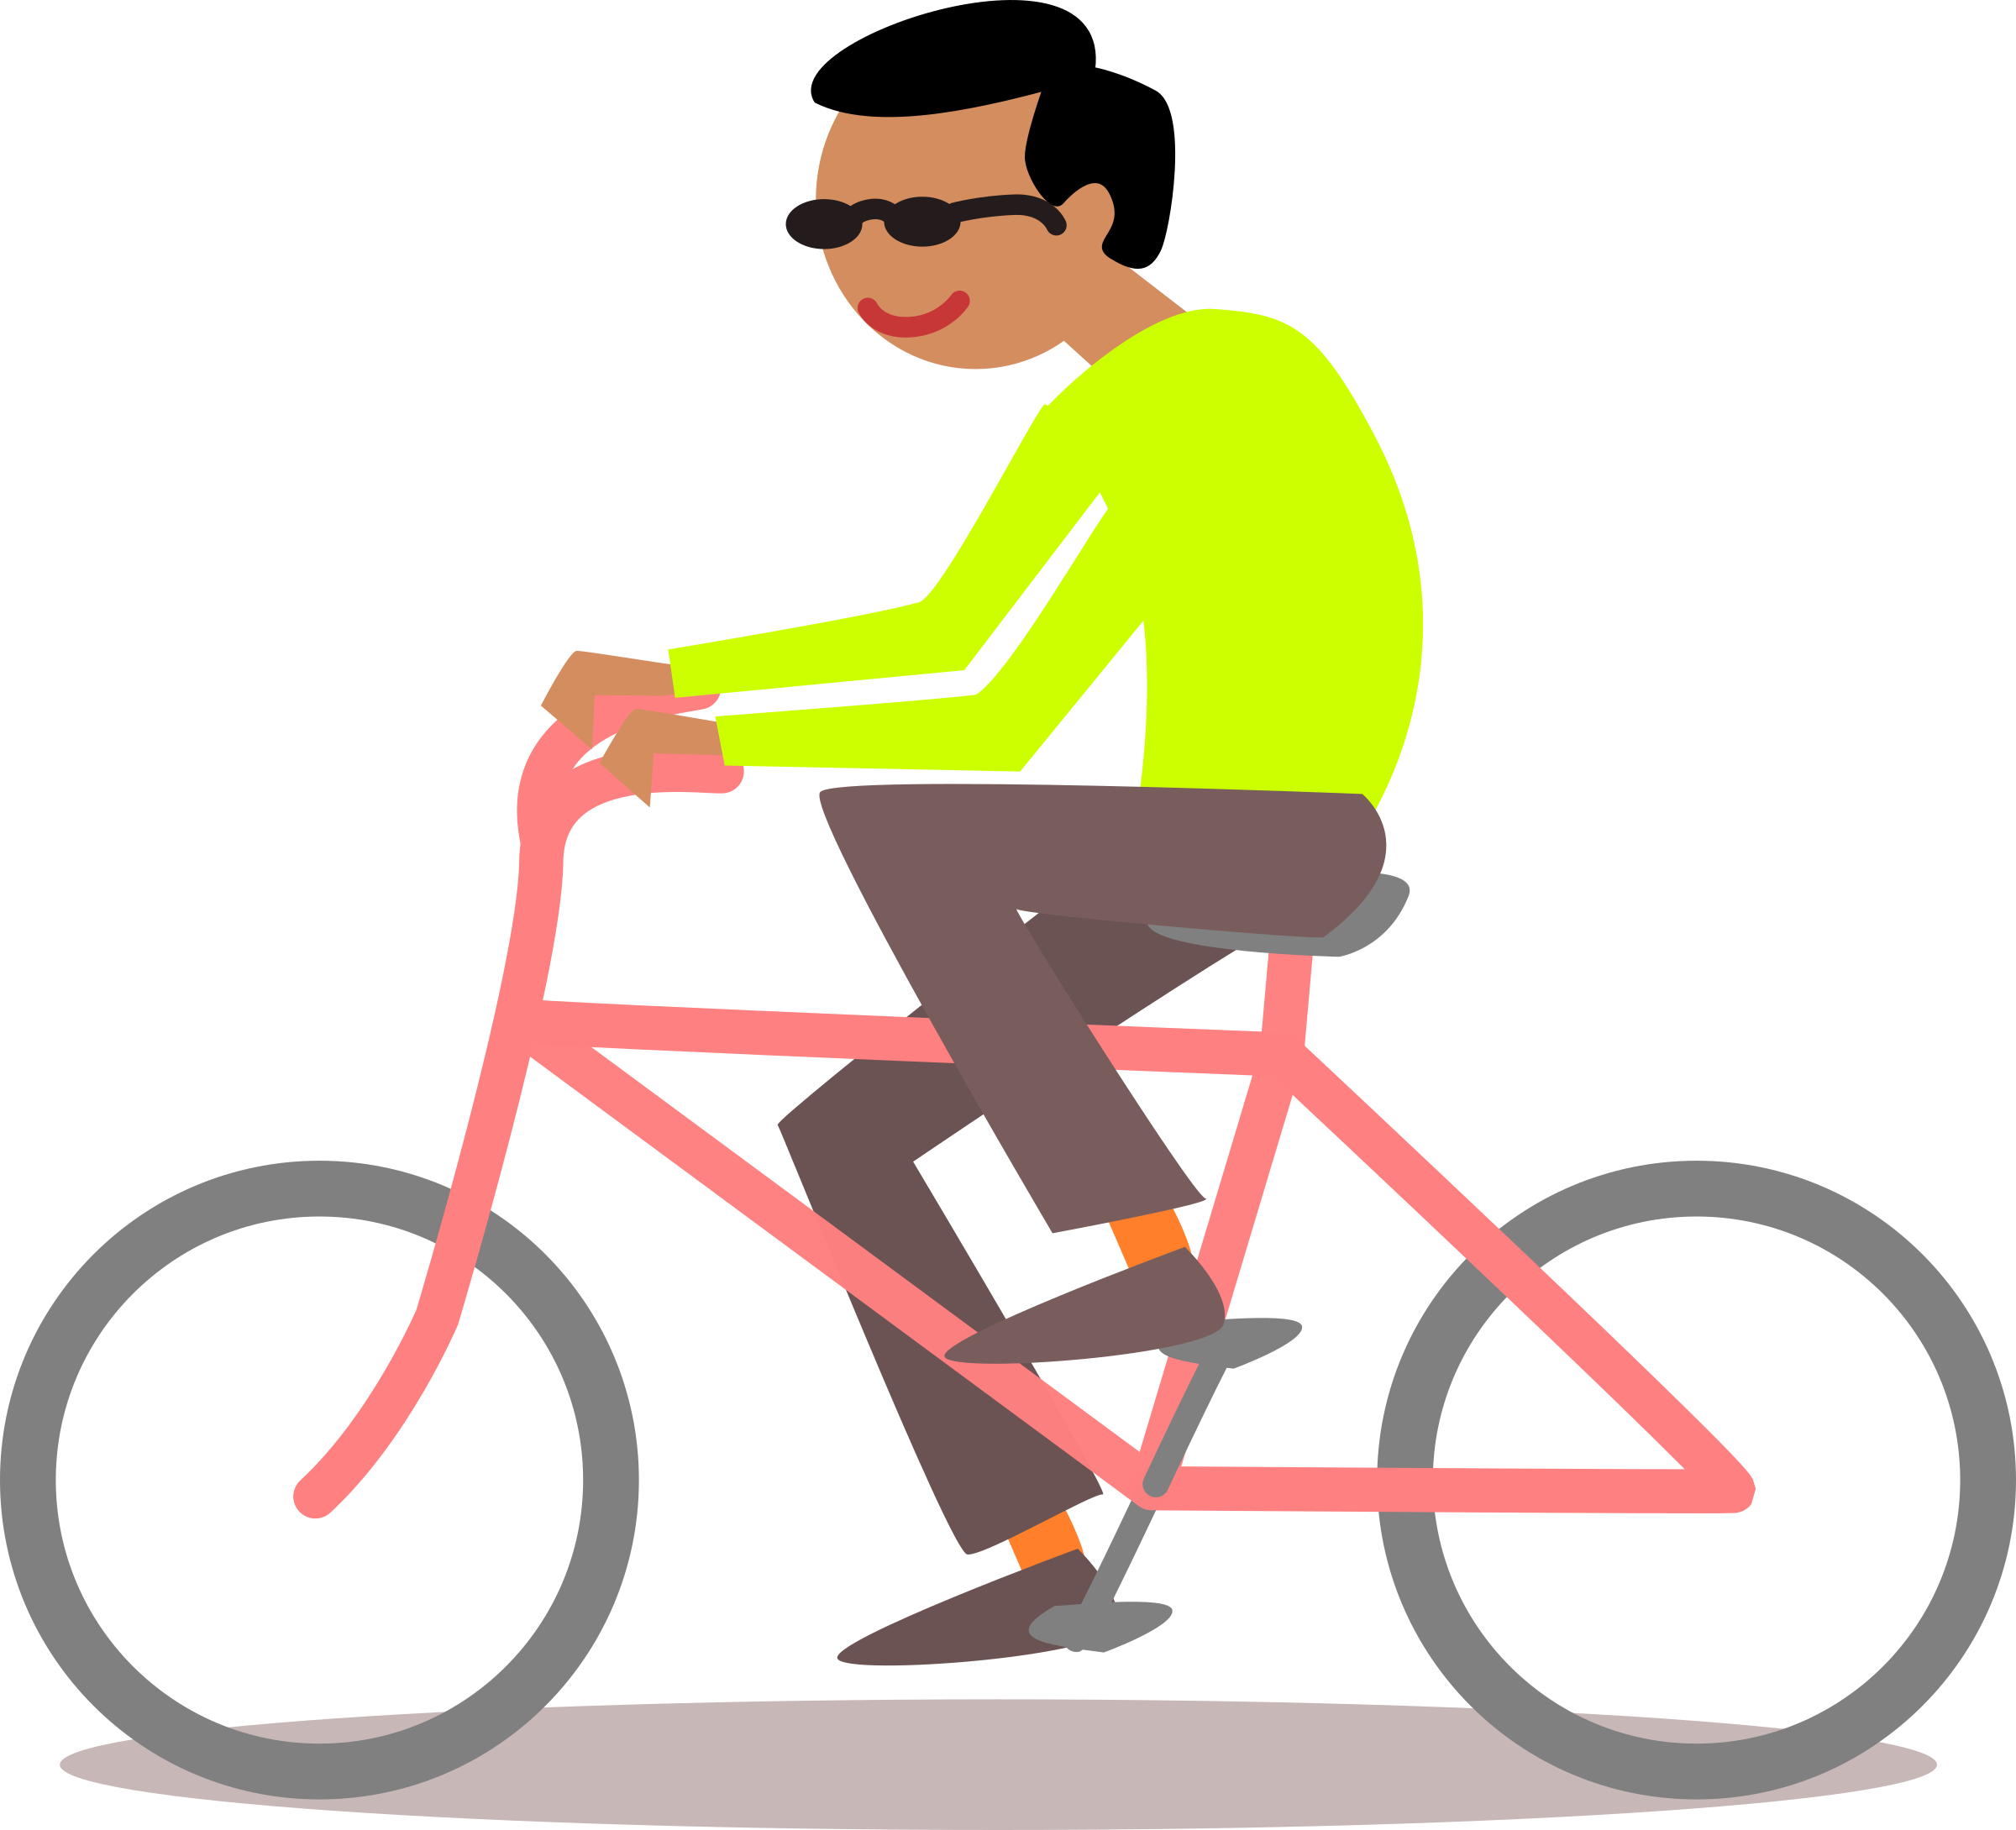 Cycle clipart bycicle. Bike big image png